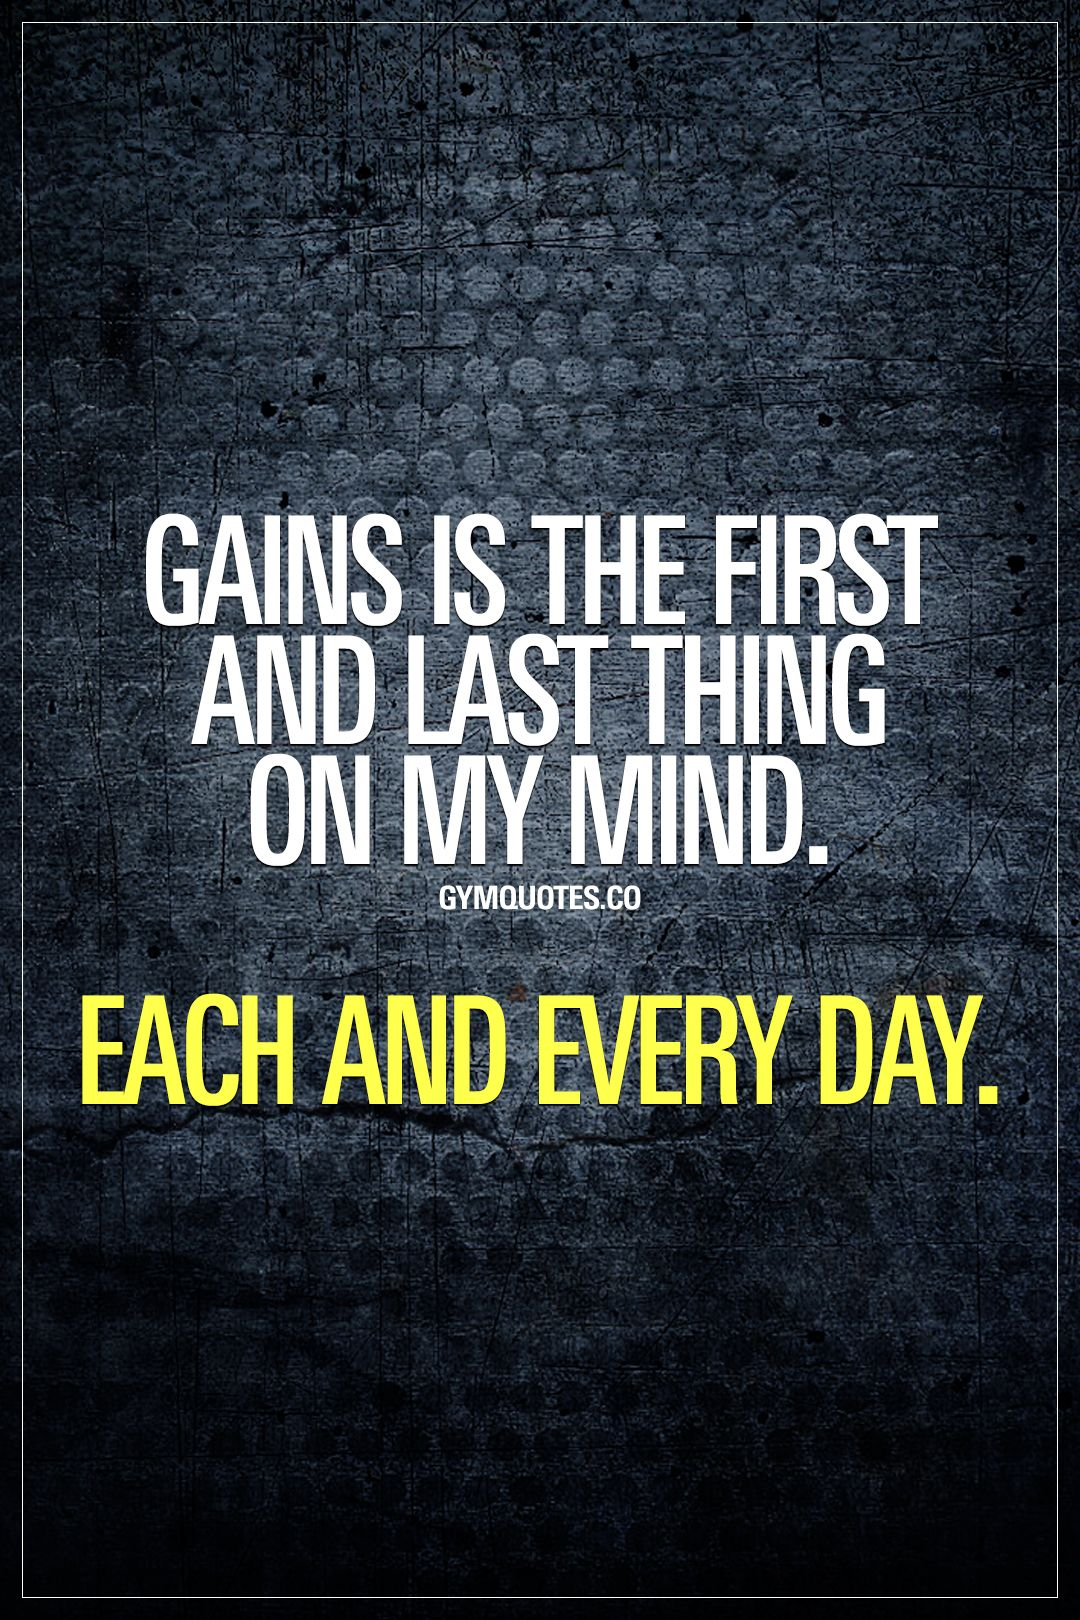 Gains Is The First And Last Thing On My Mind Each And Every Day Oh Cmon Be Honest Now You Fitness Inspiration Quotes Gym Quote Fitness Motivation Quotes